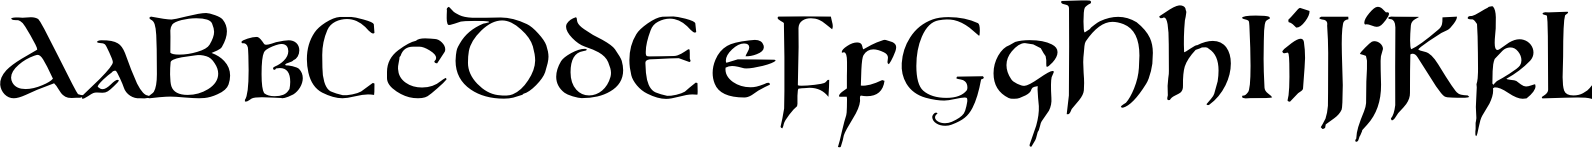 750 Latin Uncial Normal Font